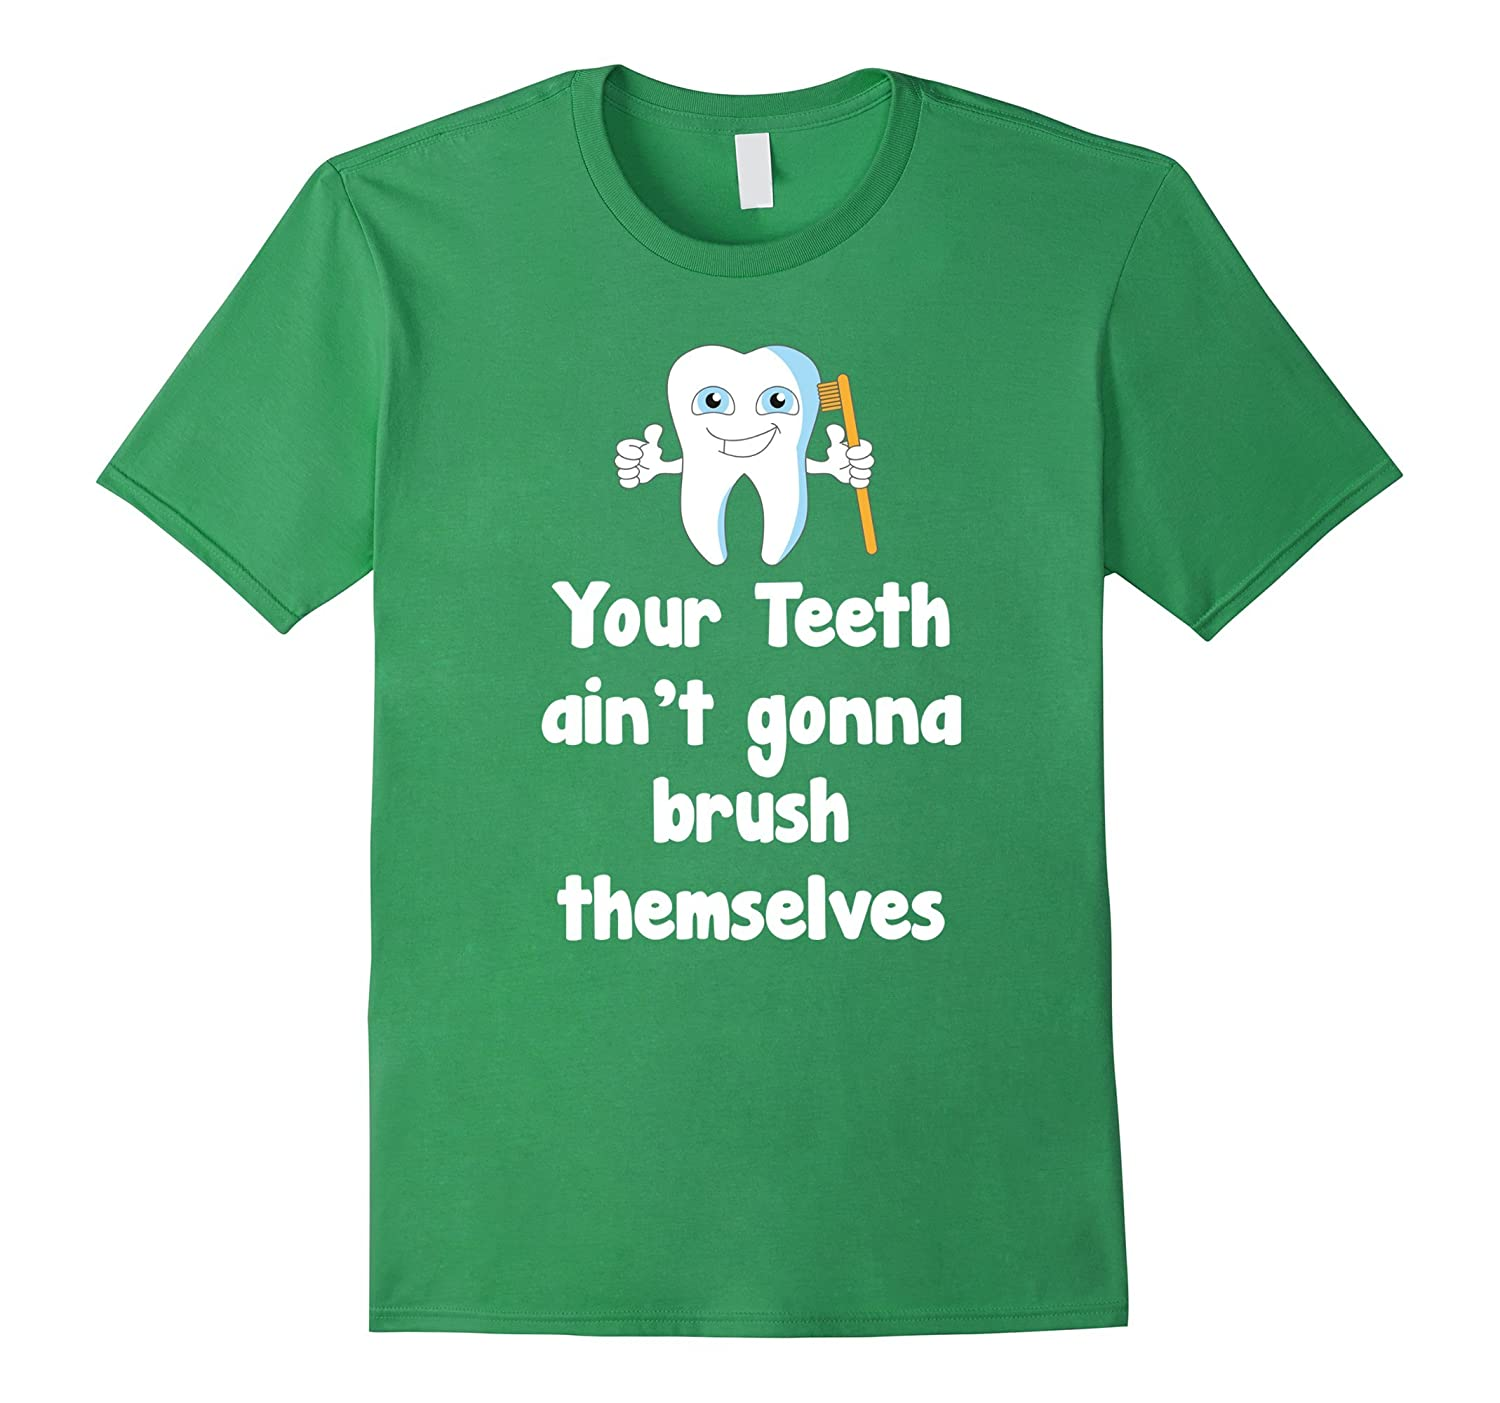 Dentist Dental Hygienist T-Shirt -- Teeth Aint Gonna Brush-TD